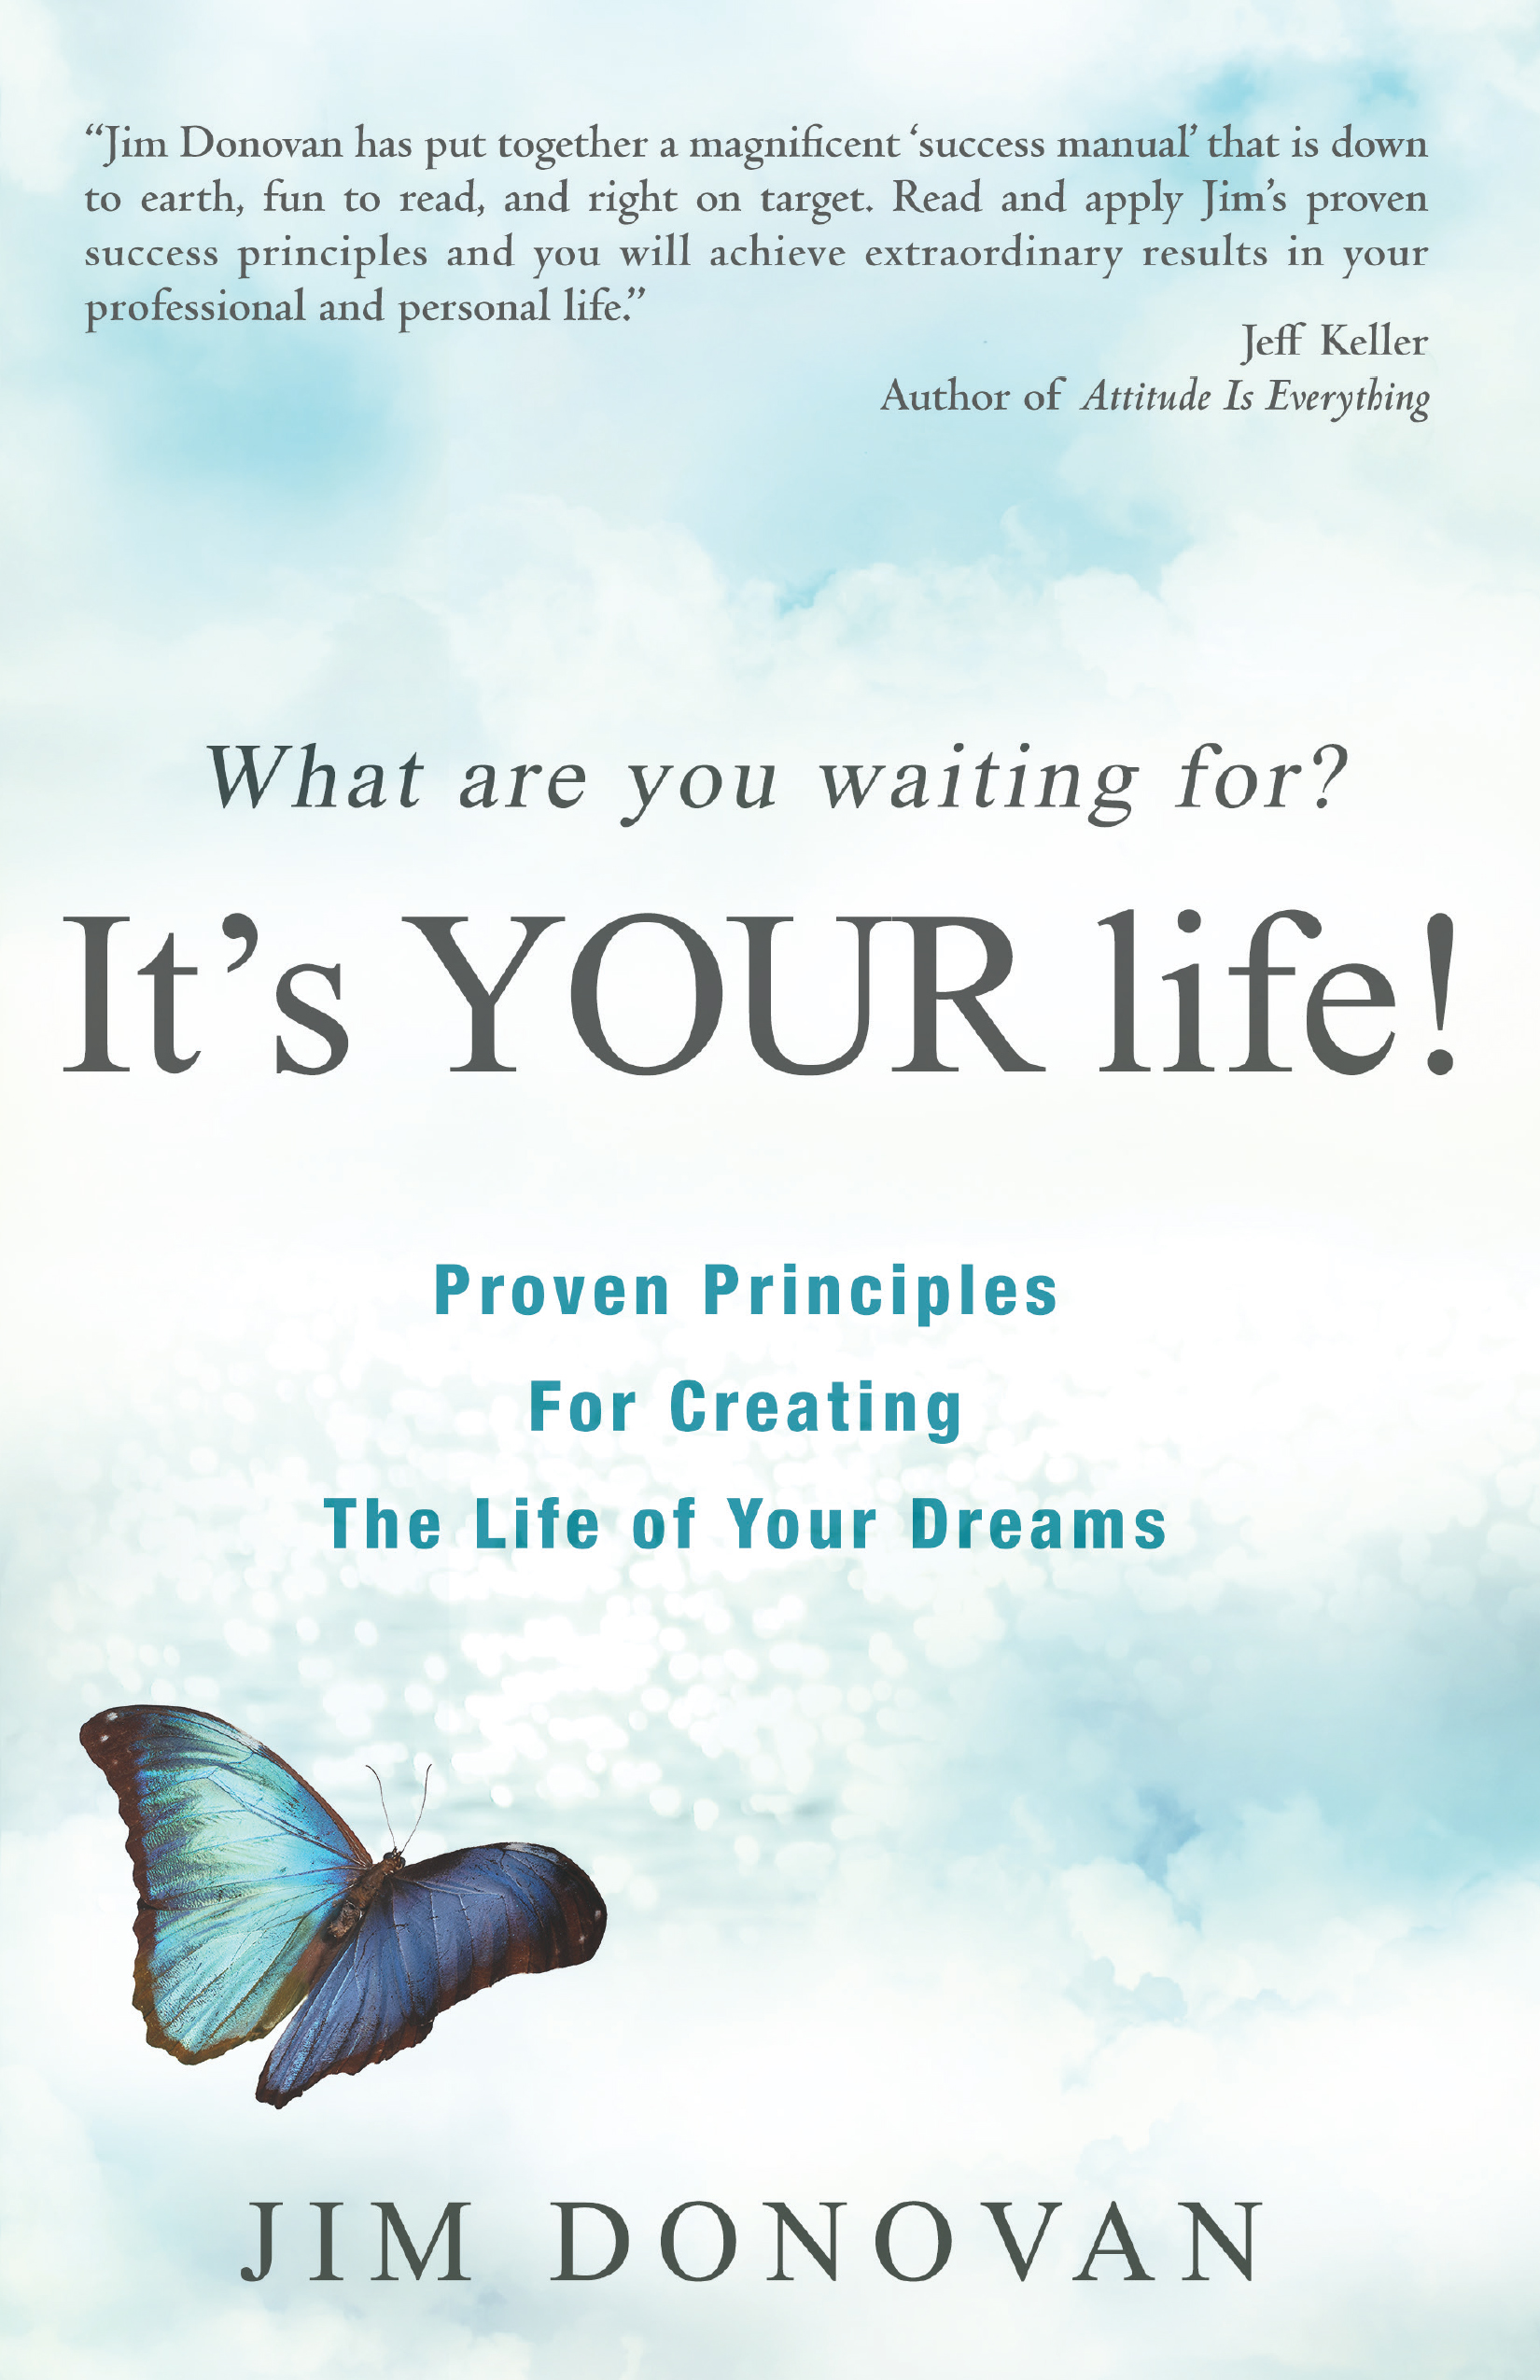 What Are You Waiting For? - By jim donovan